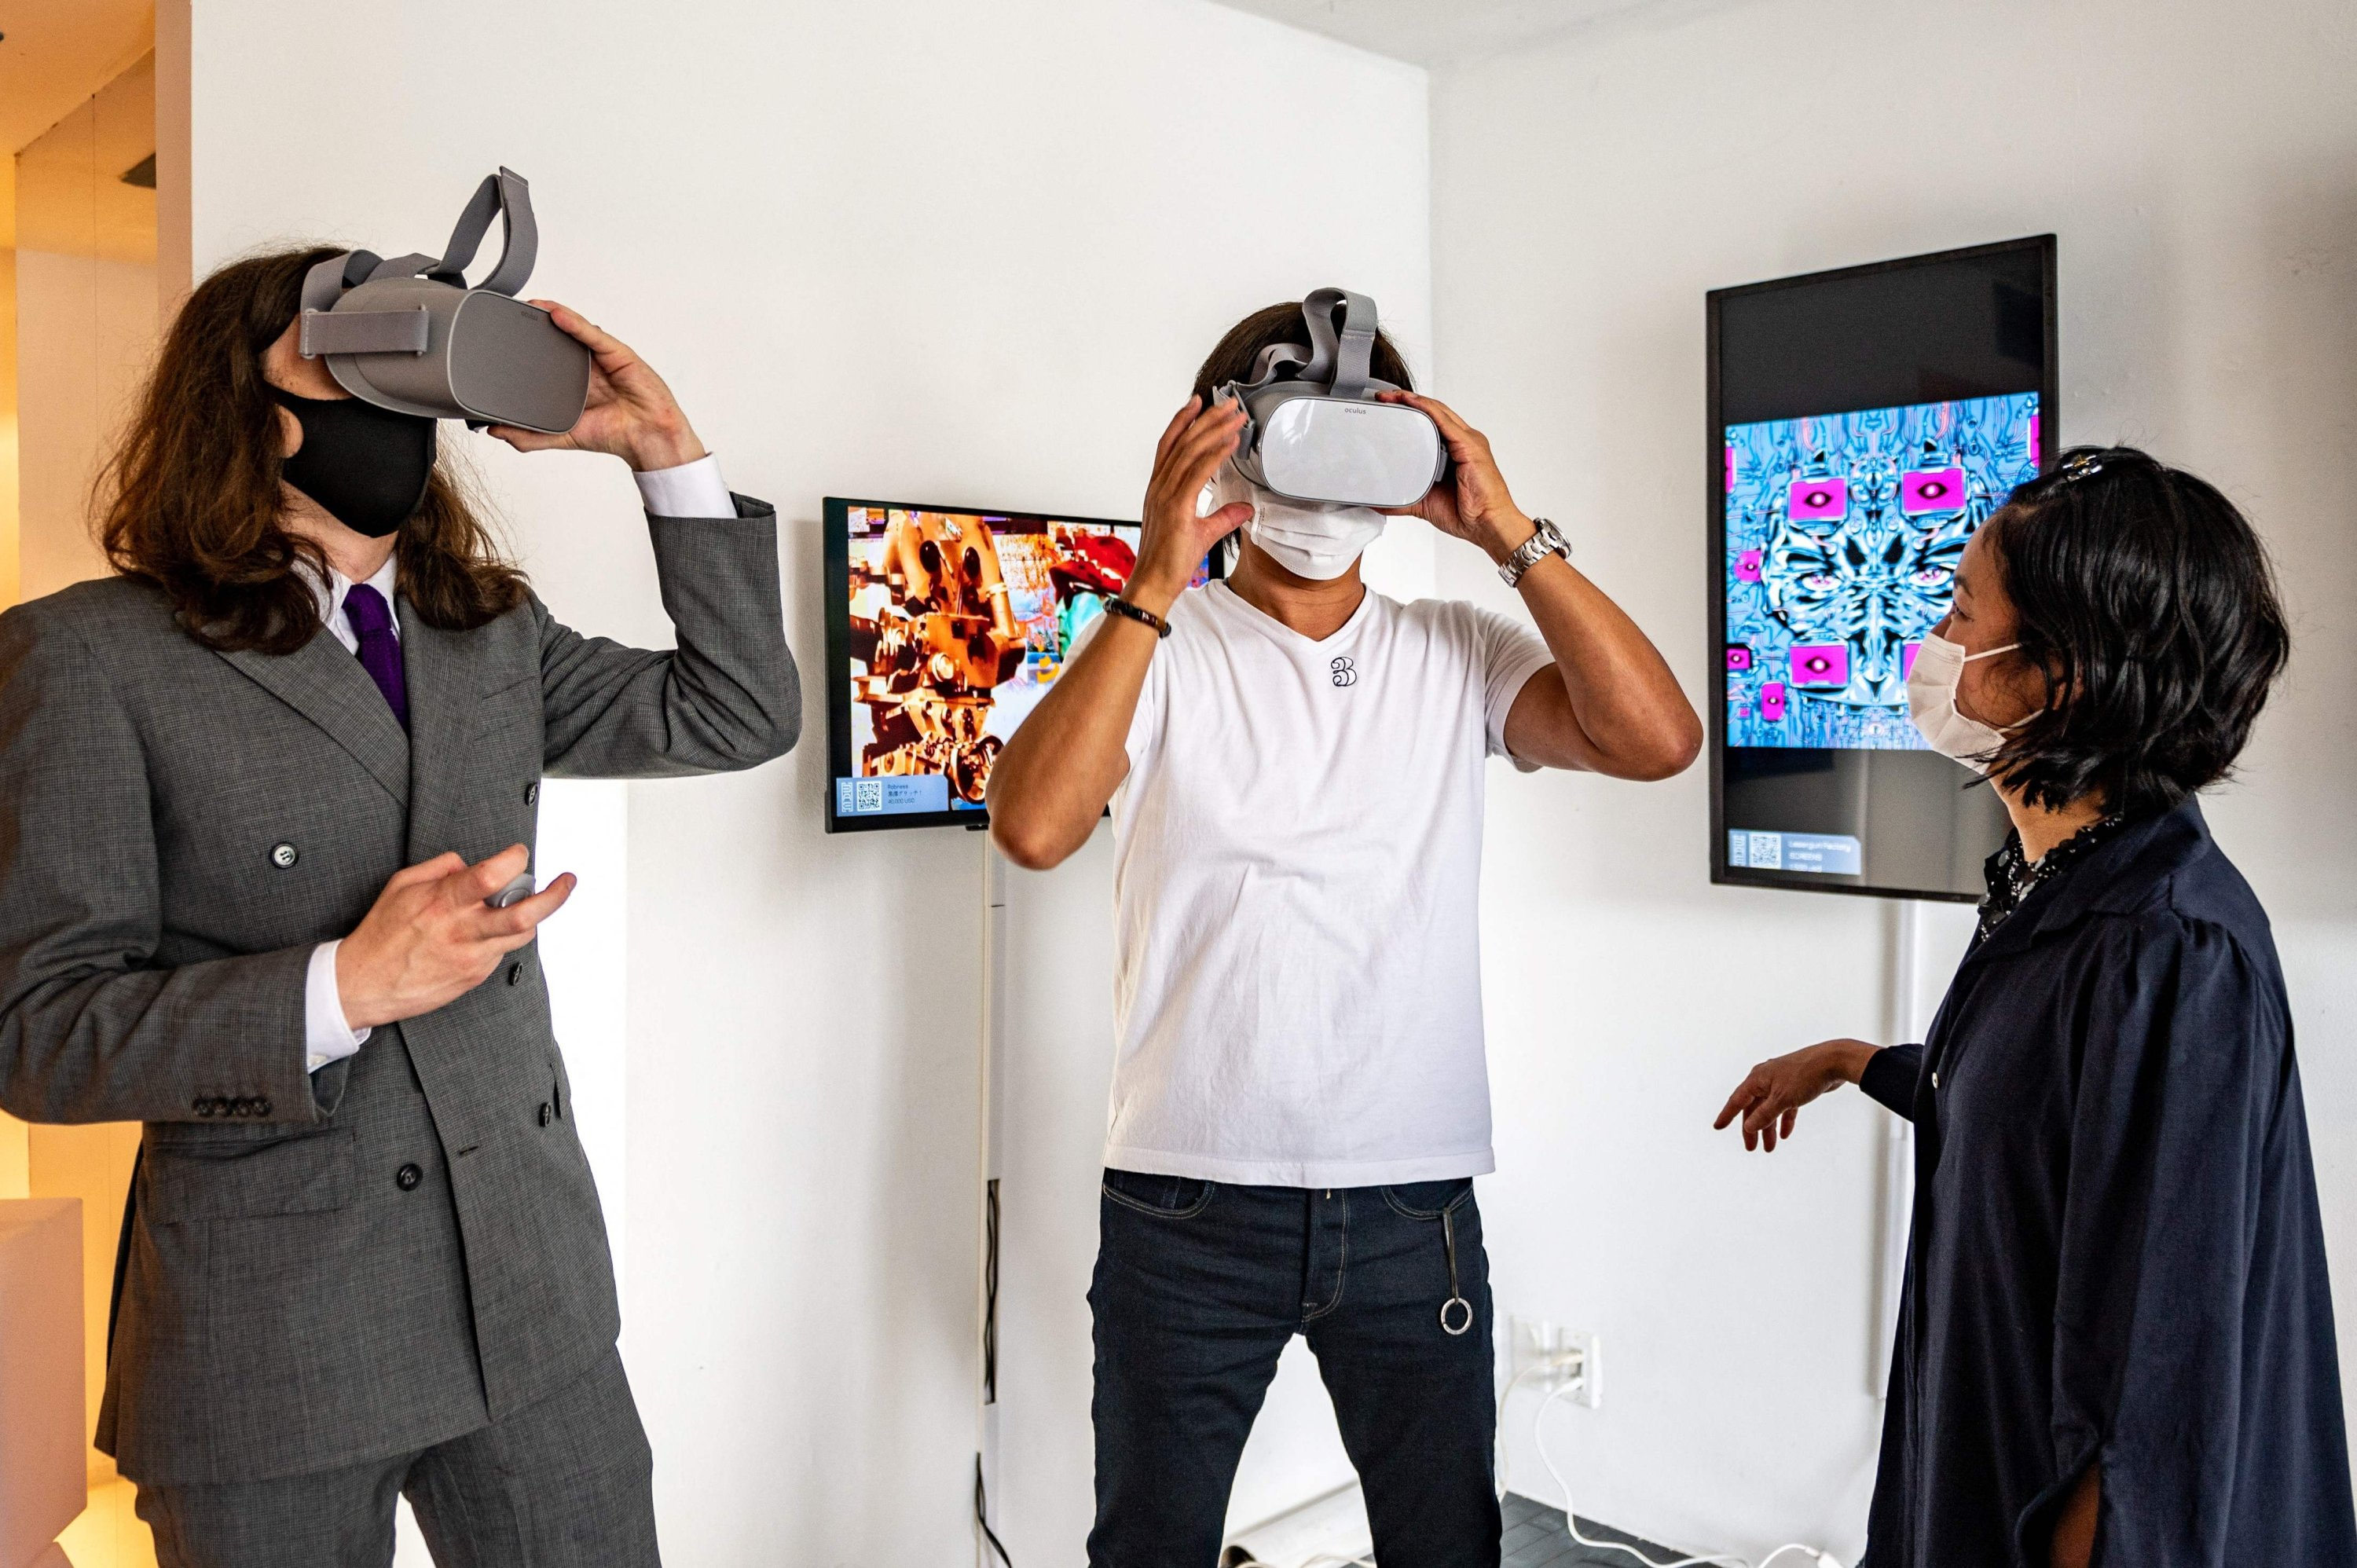 CEO of the BAE, a crypto art platform, and the exhibition's curator, Sascha Bailey (L), demonstratesa virtual reality (VR) device to a visitor (C) during 'CrypTOKYO', a physical blockchain art exhibition in Tokyo, Japan, June 25, 2021. (Philip Fong via AFP)